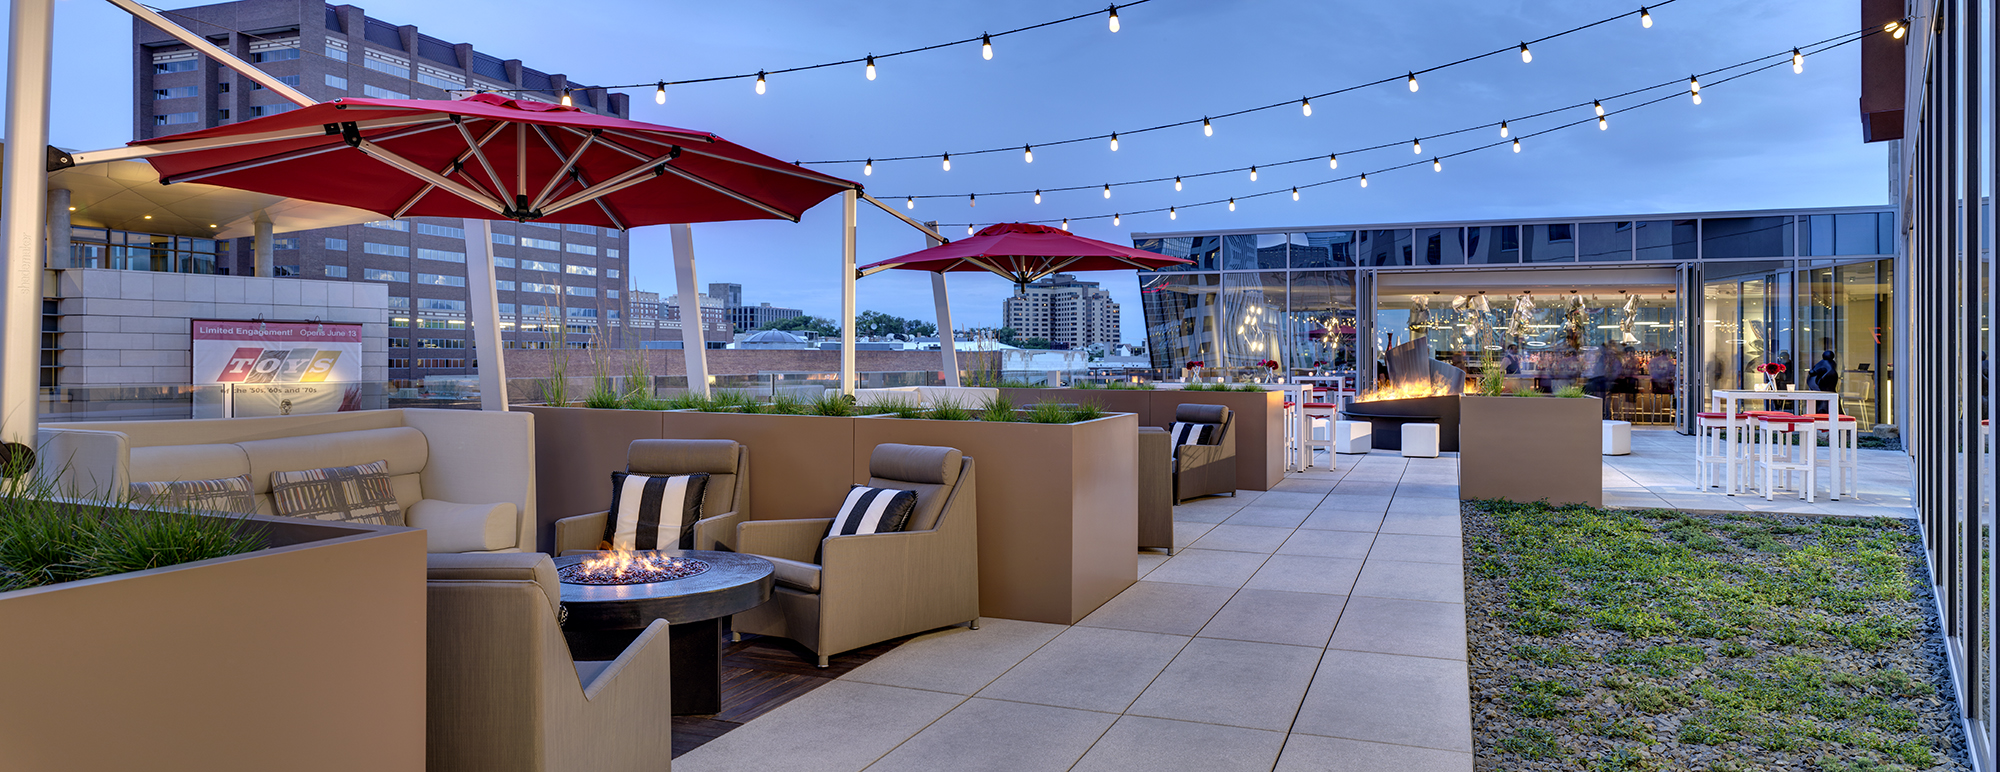 The 11 Best Rooftop Patios In Denver Colorado